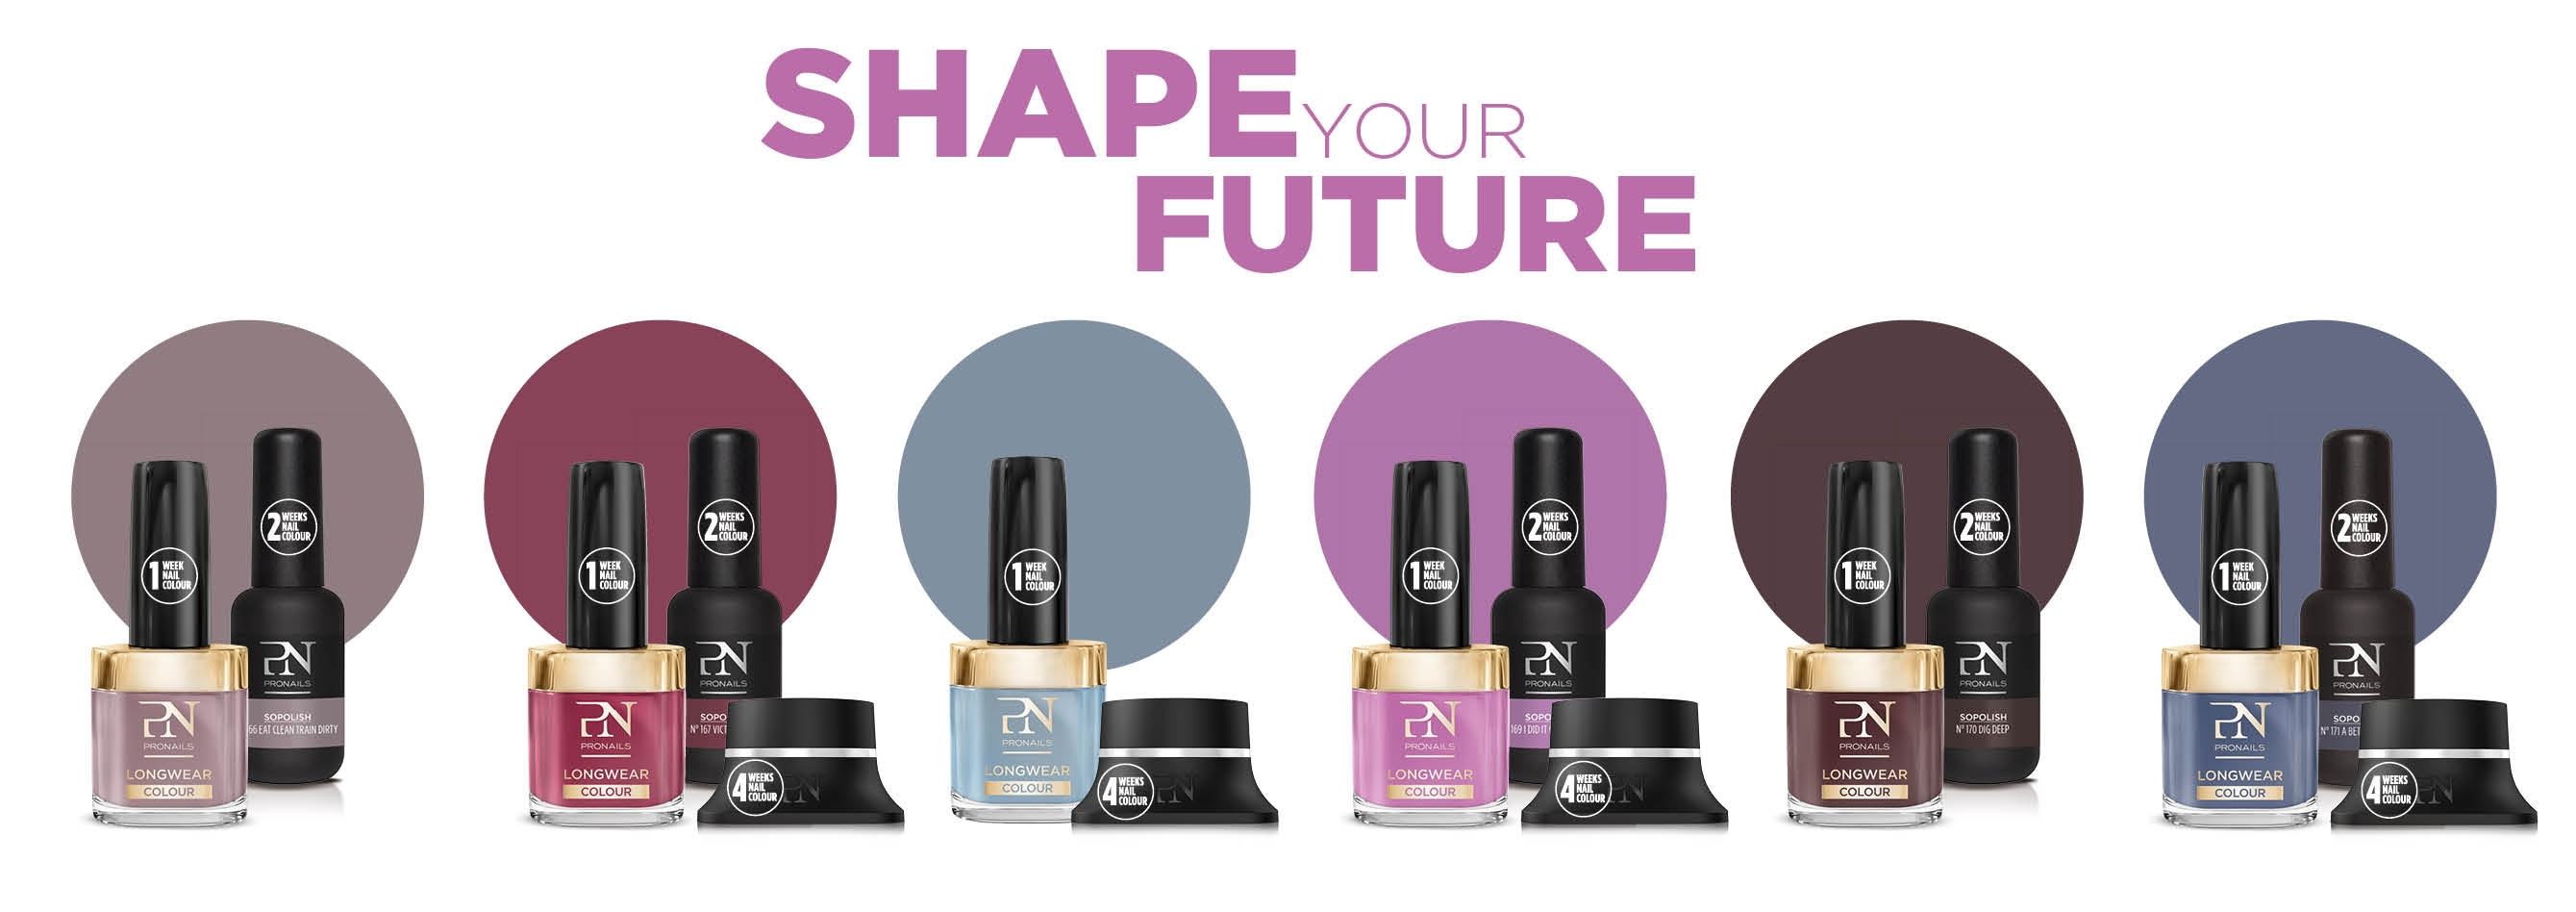 1_Shape Your Future